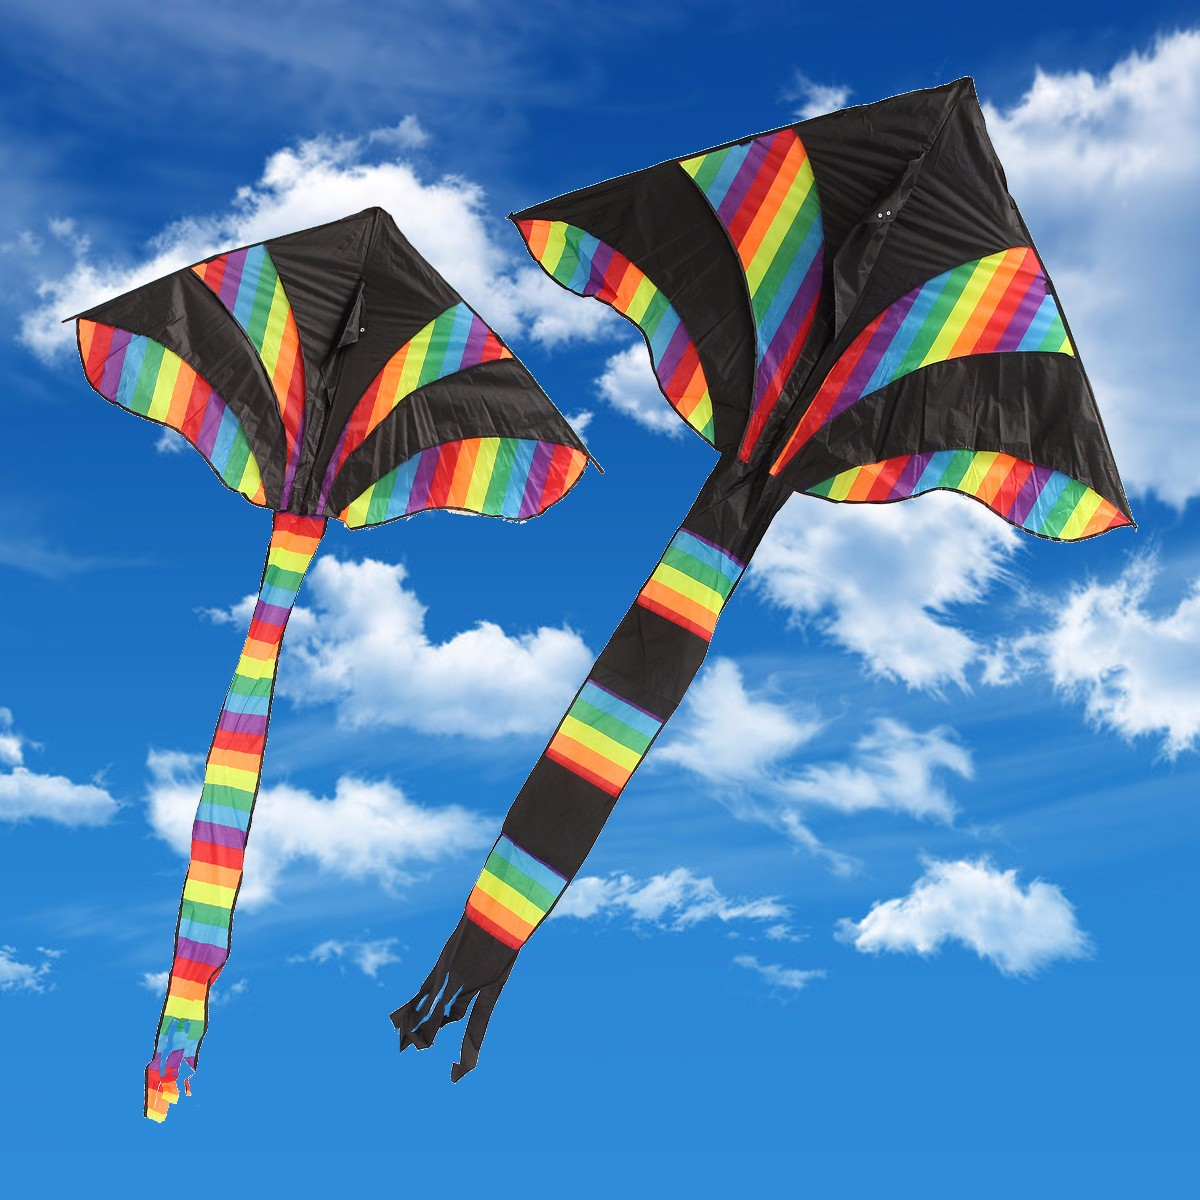 kite flying and business Kite flying and business essay sample kite flying is one of the most popular sports and festival in india according to the greek literature, kite-flying dates back to as old as 14th century and later came to india and other asian countries.